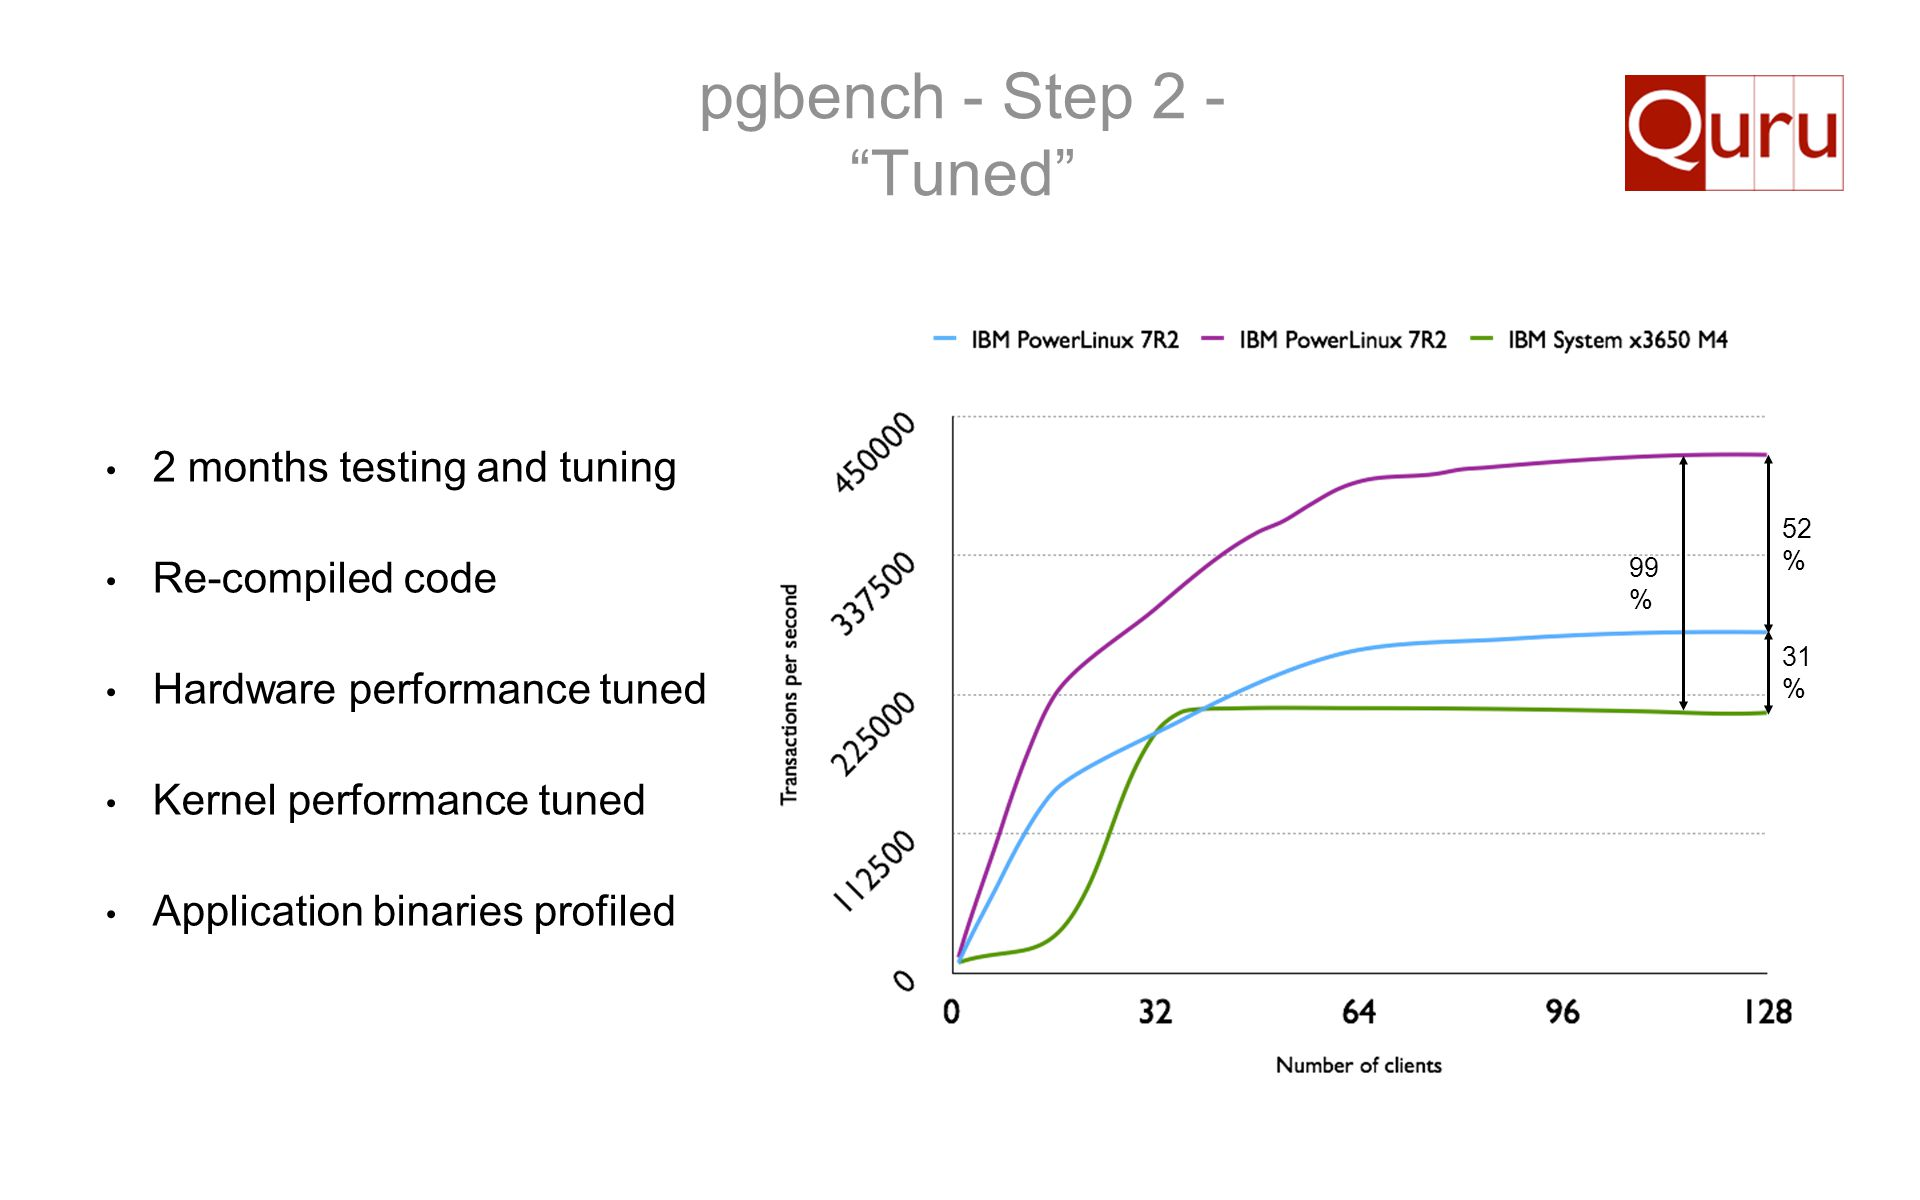 pgbench - Step 2 - Tuned